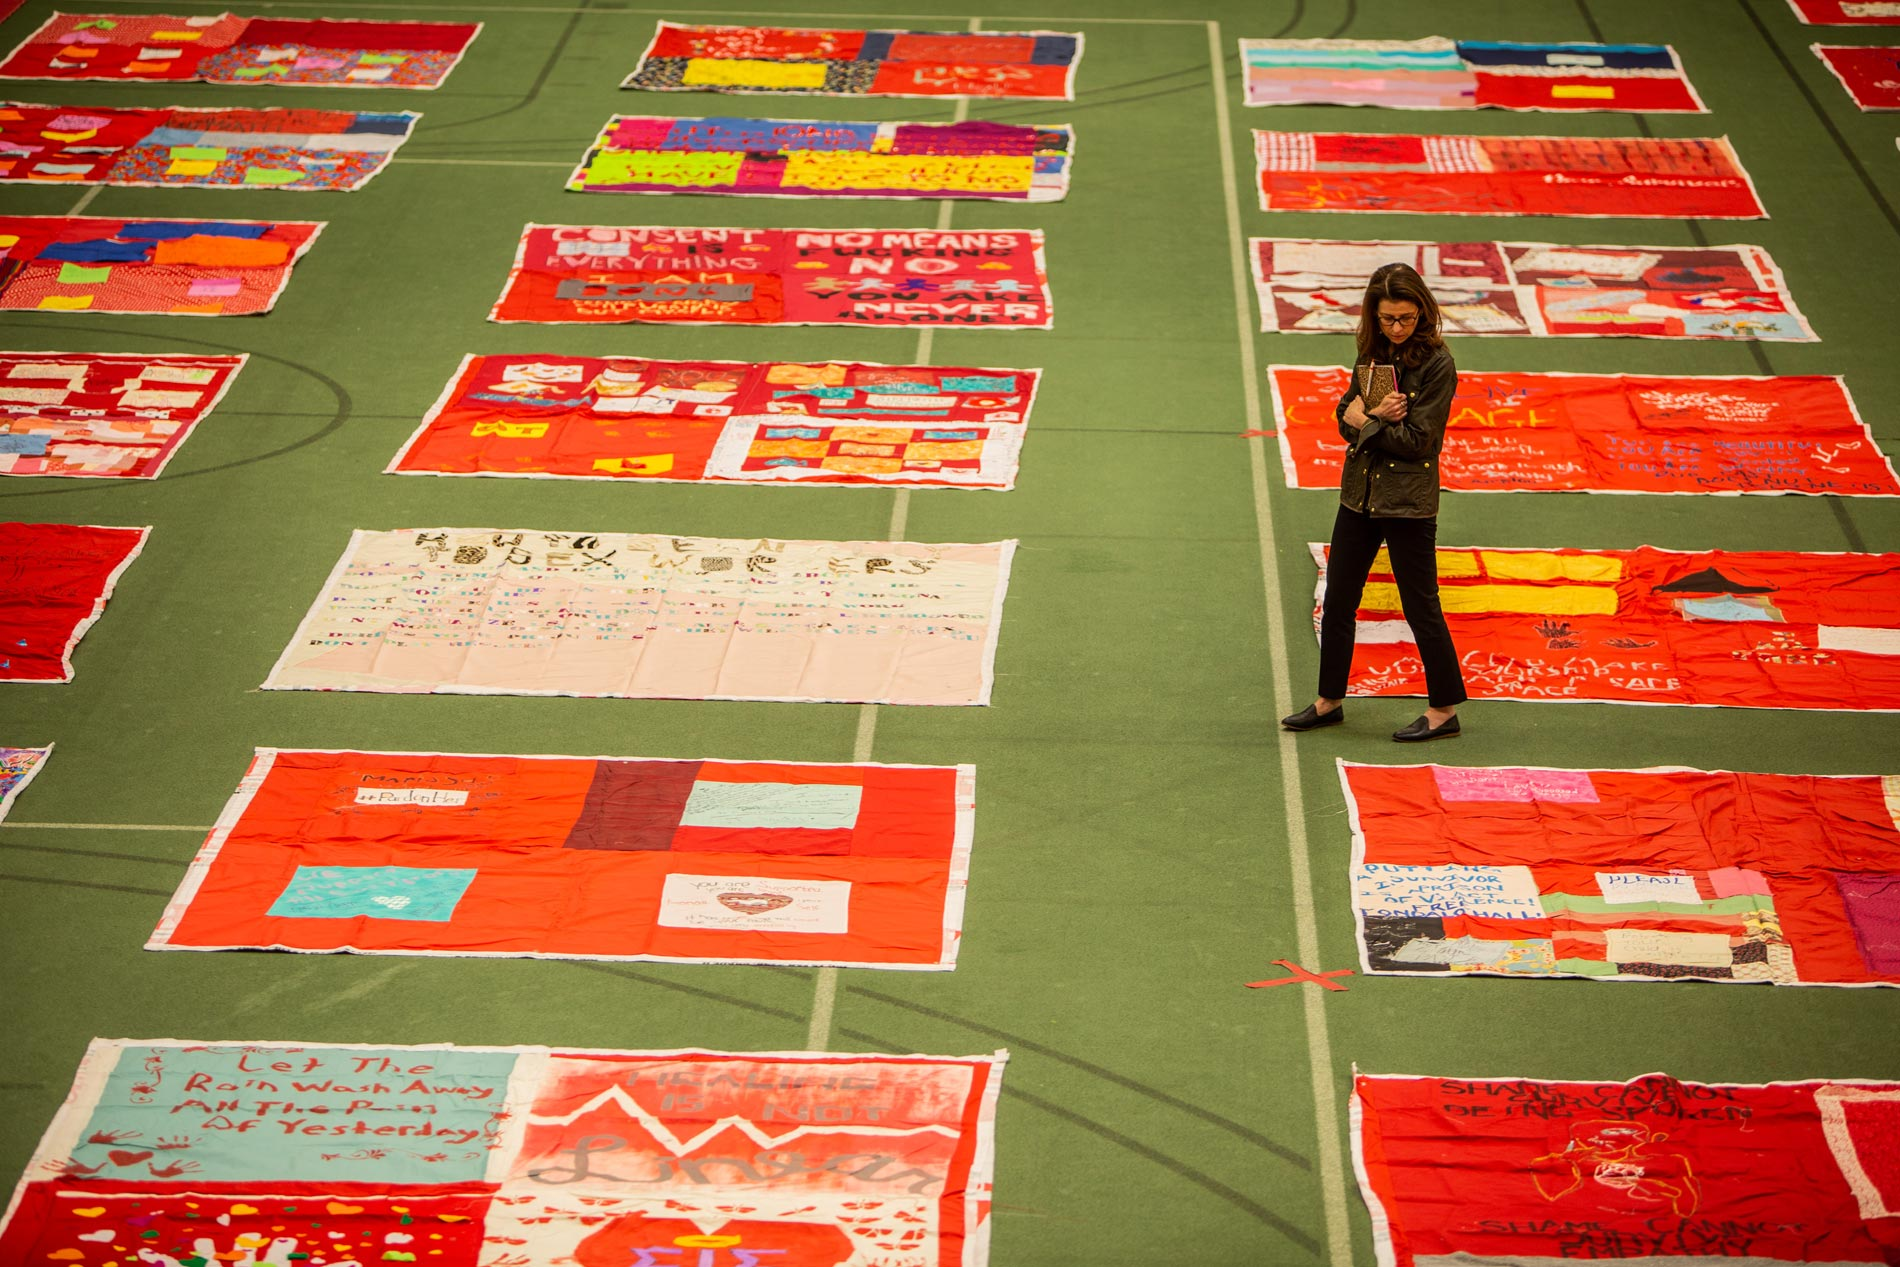 Woman standing amid red quilts on Simon Forum floor